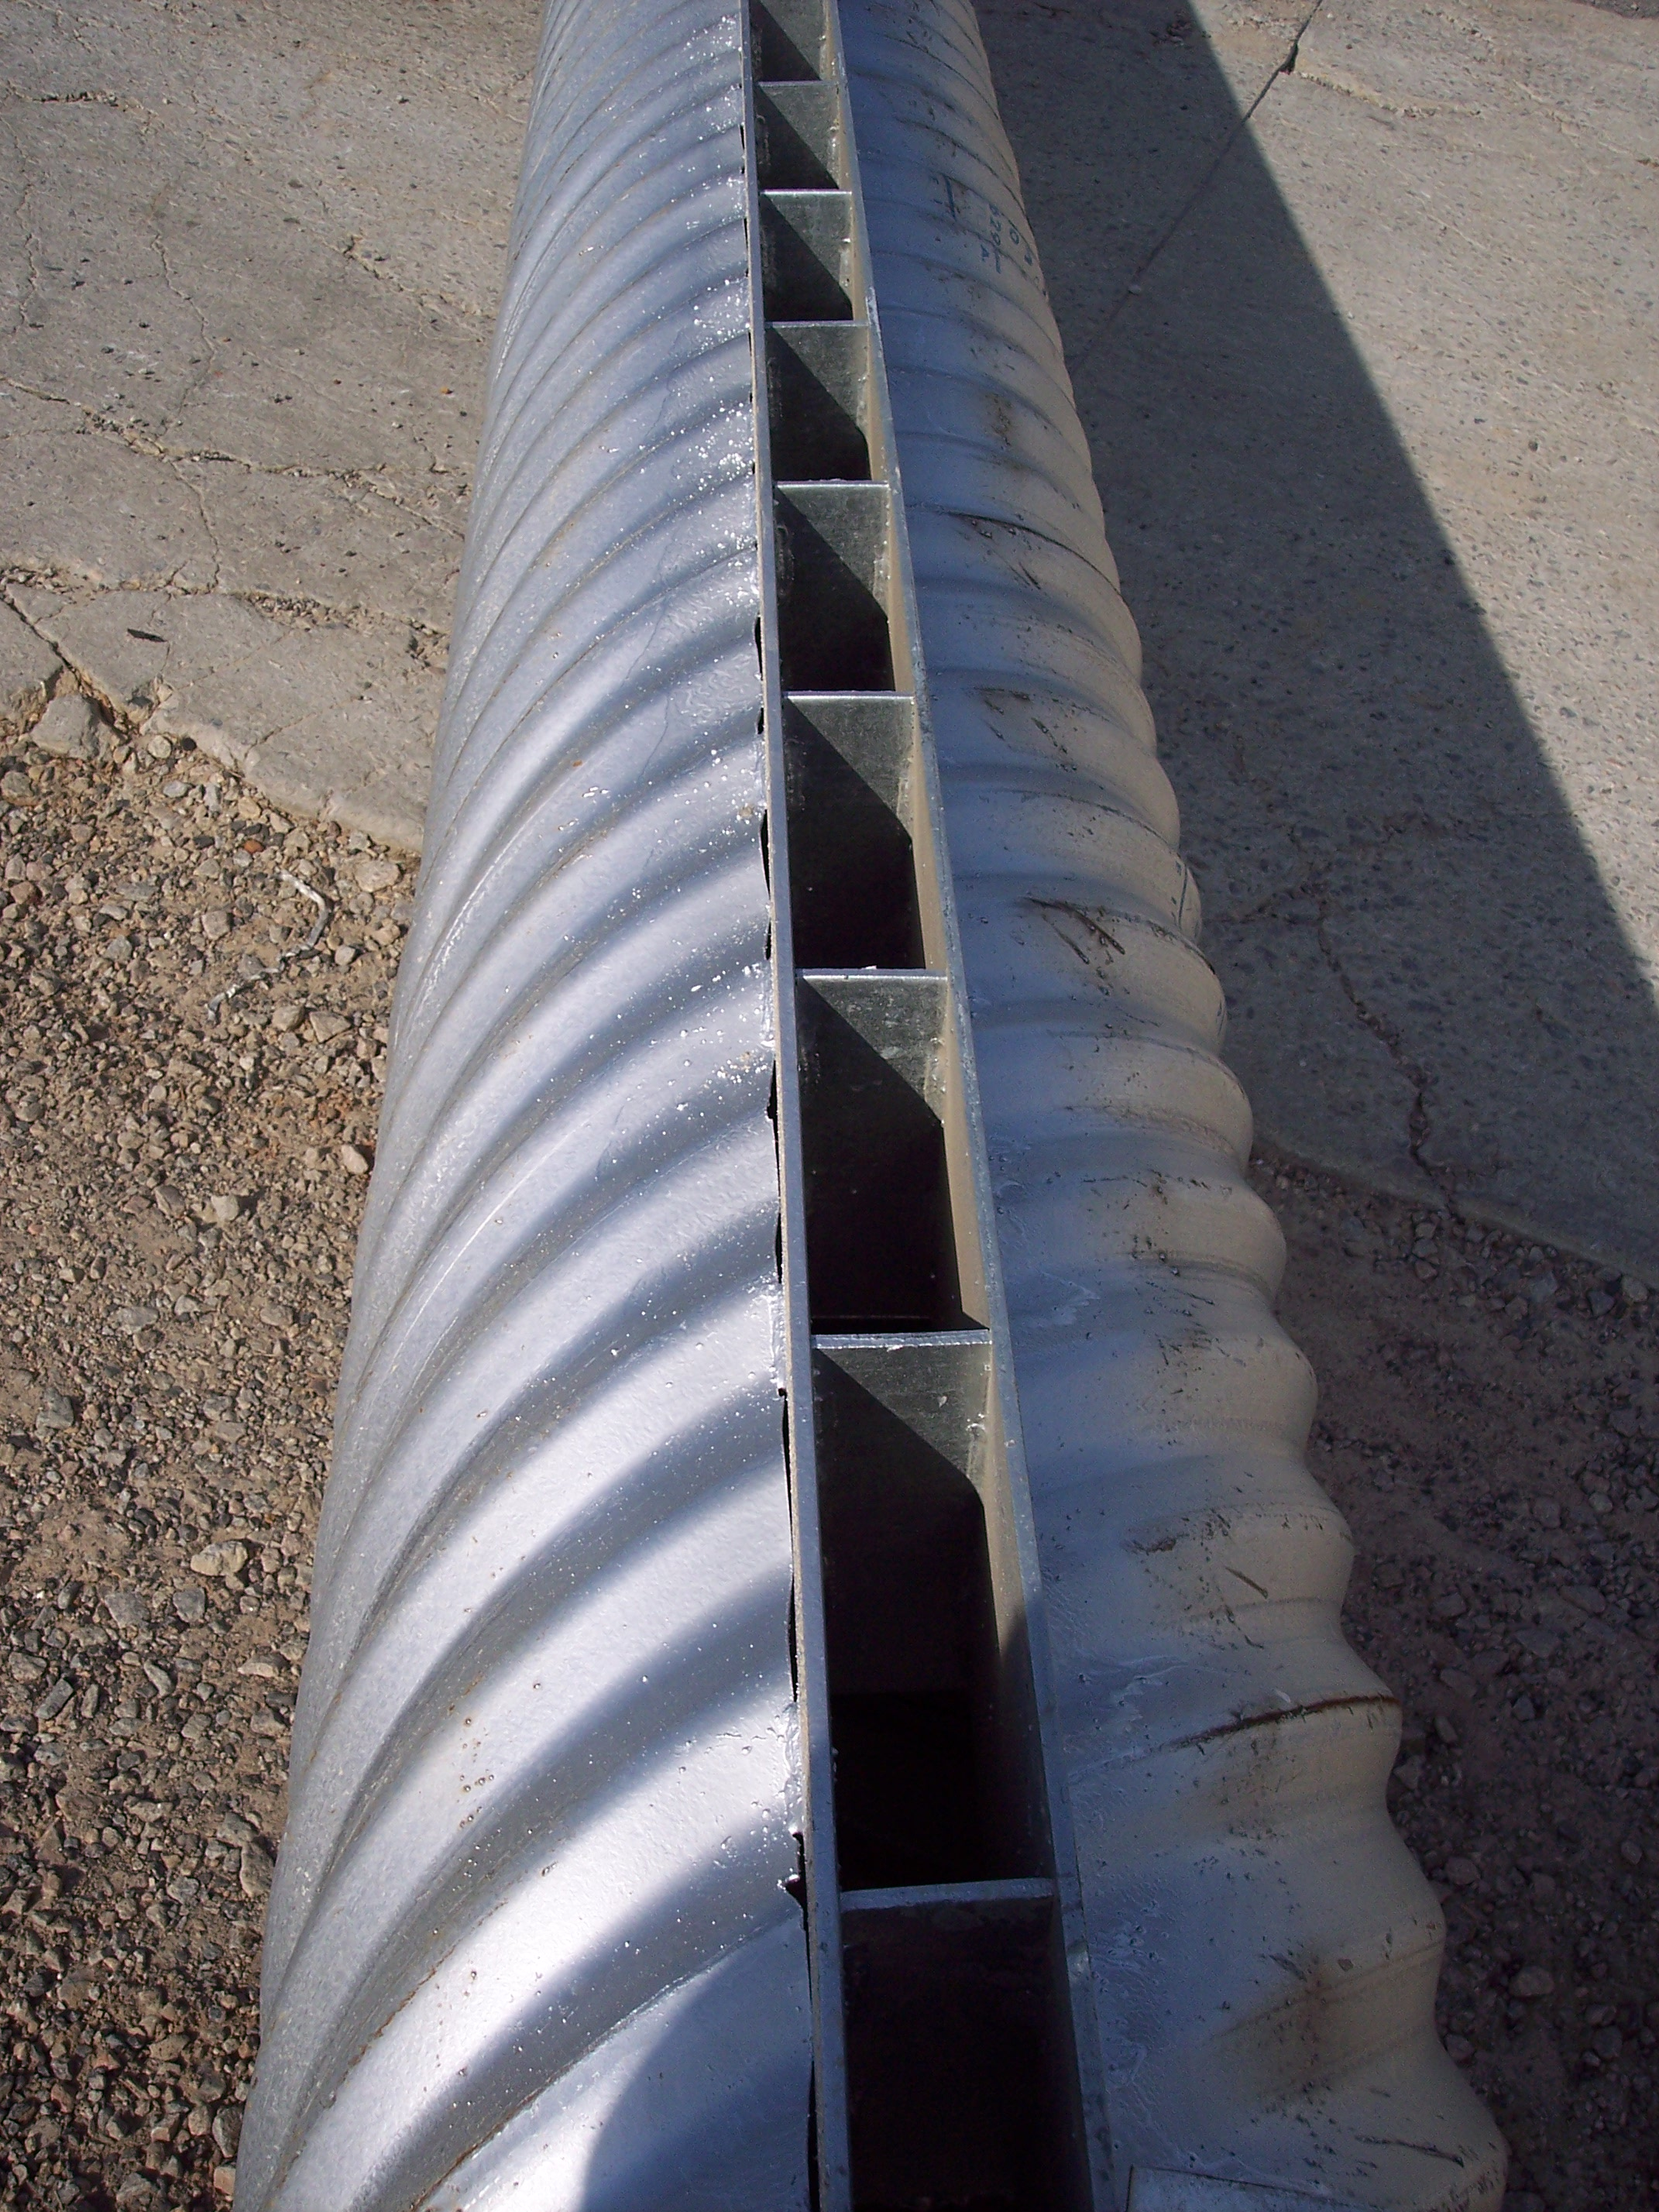 Clear Plastic Tubing Slotted Drainage Pipe